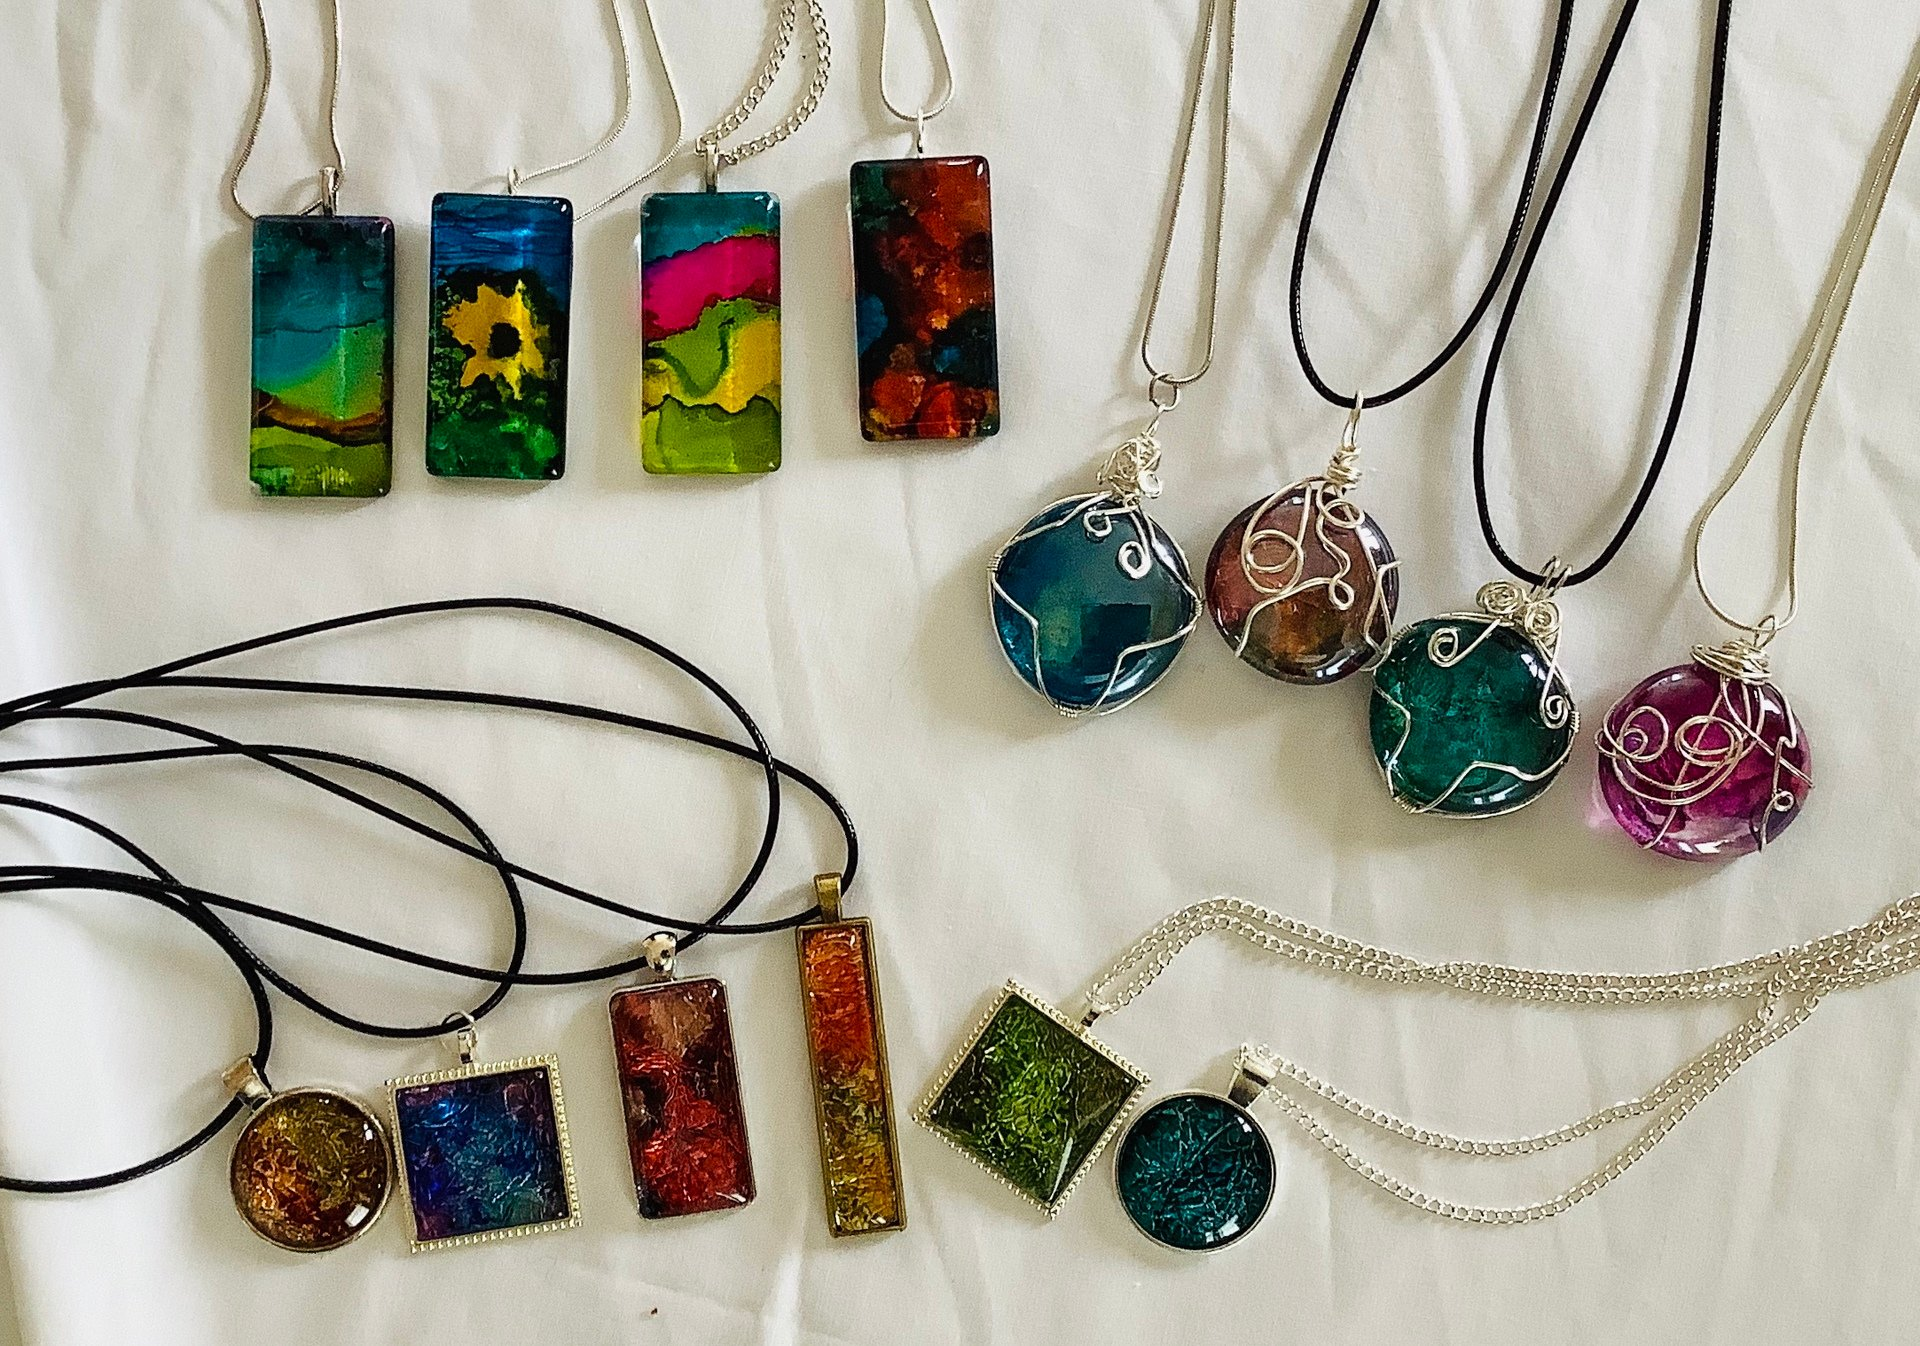 Alcohol Ink Pendants are individually hand painted in several styles and settings. Some are set in a tray while other are hand wired. Price $25.00 - $45.00